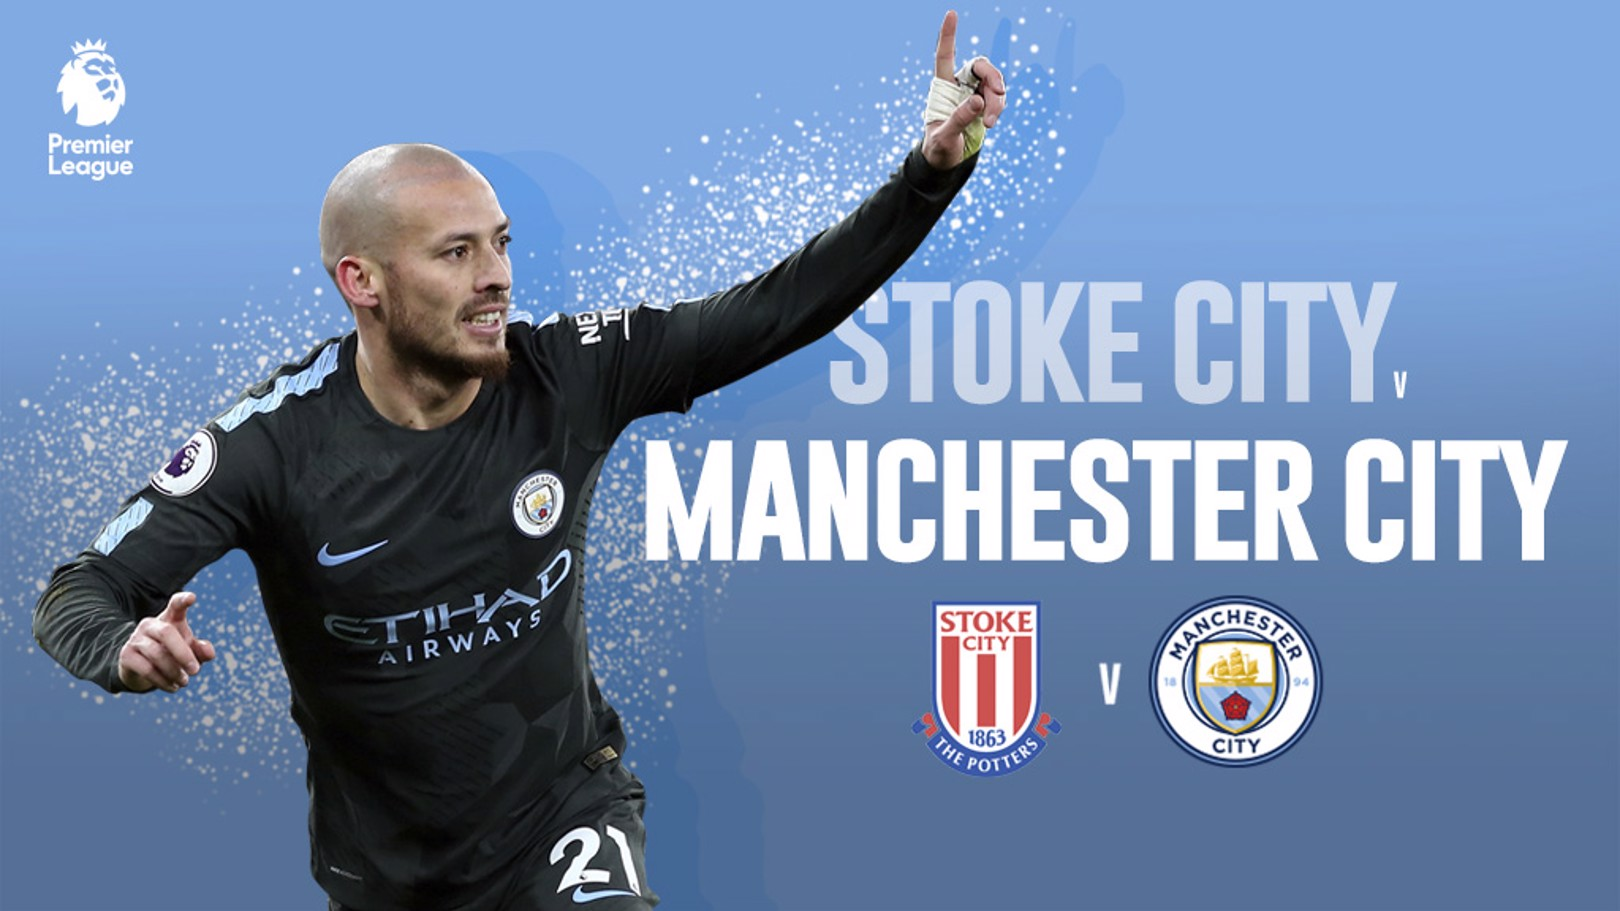 STOKE-CITY. 30ª jornada de la Premier League.